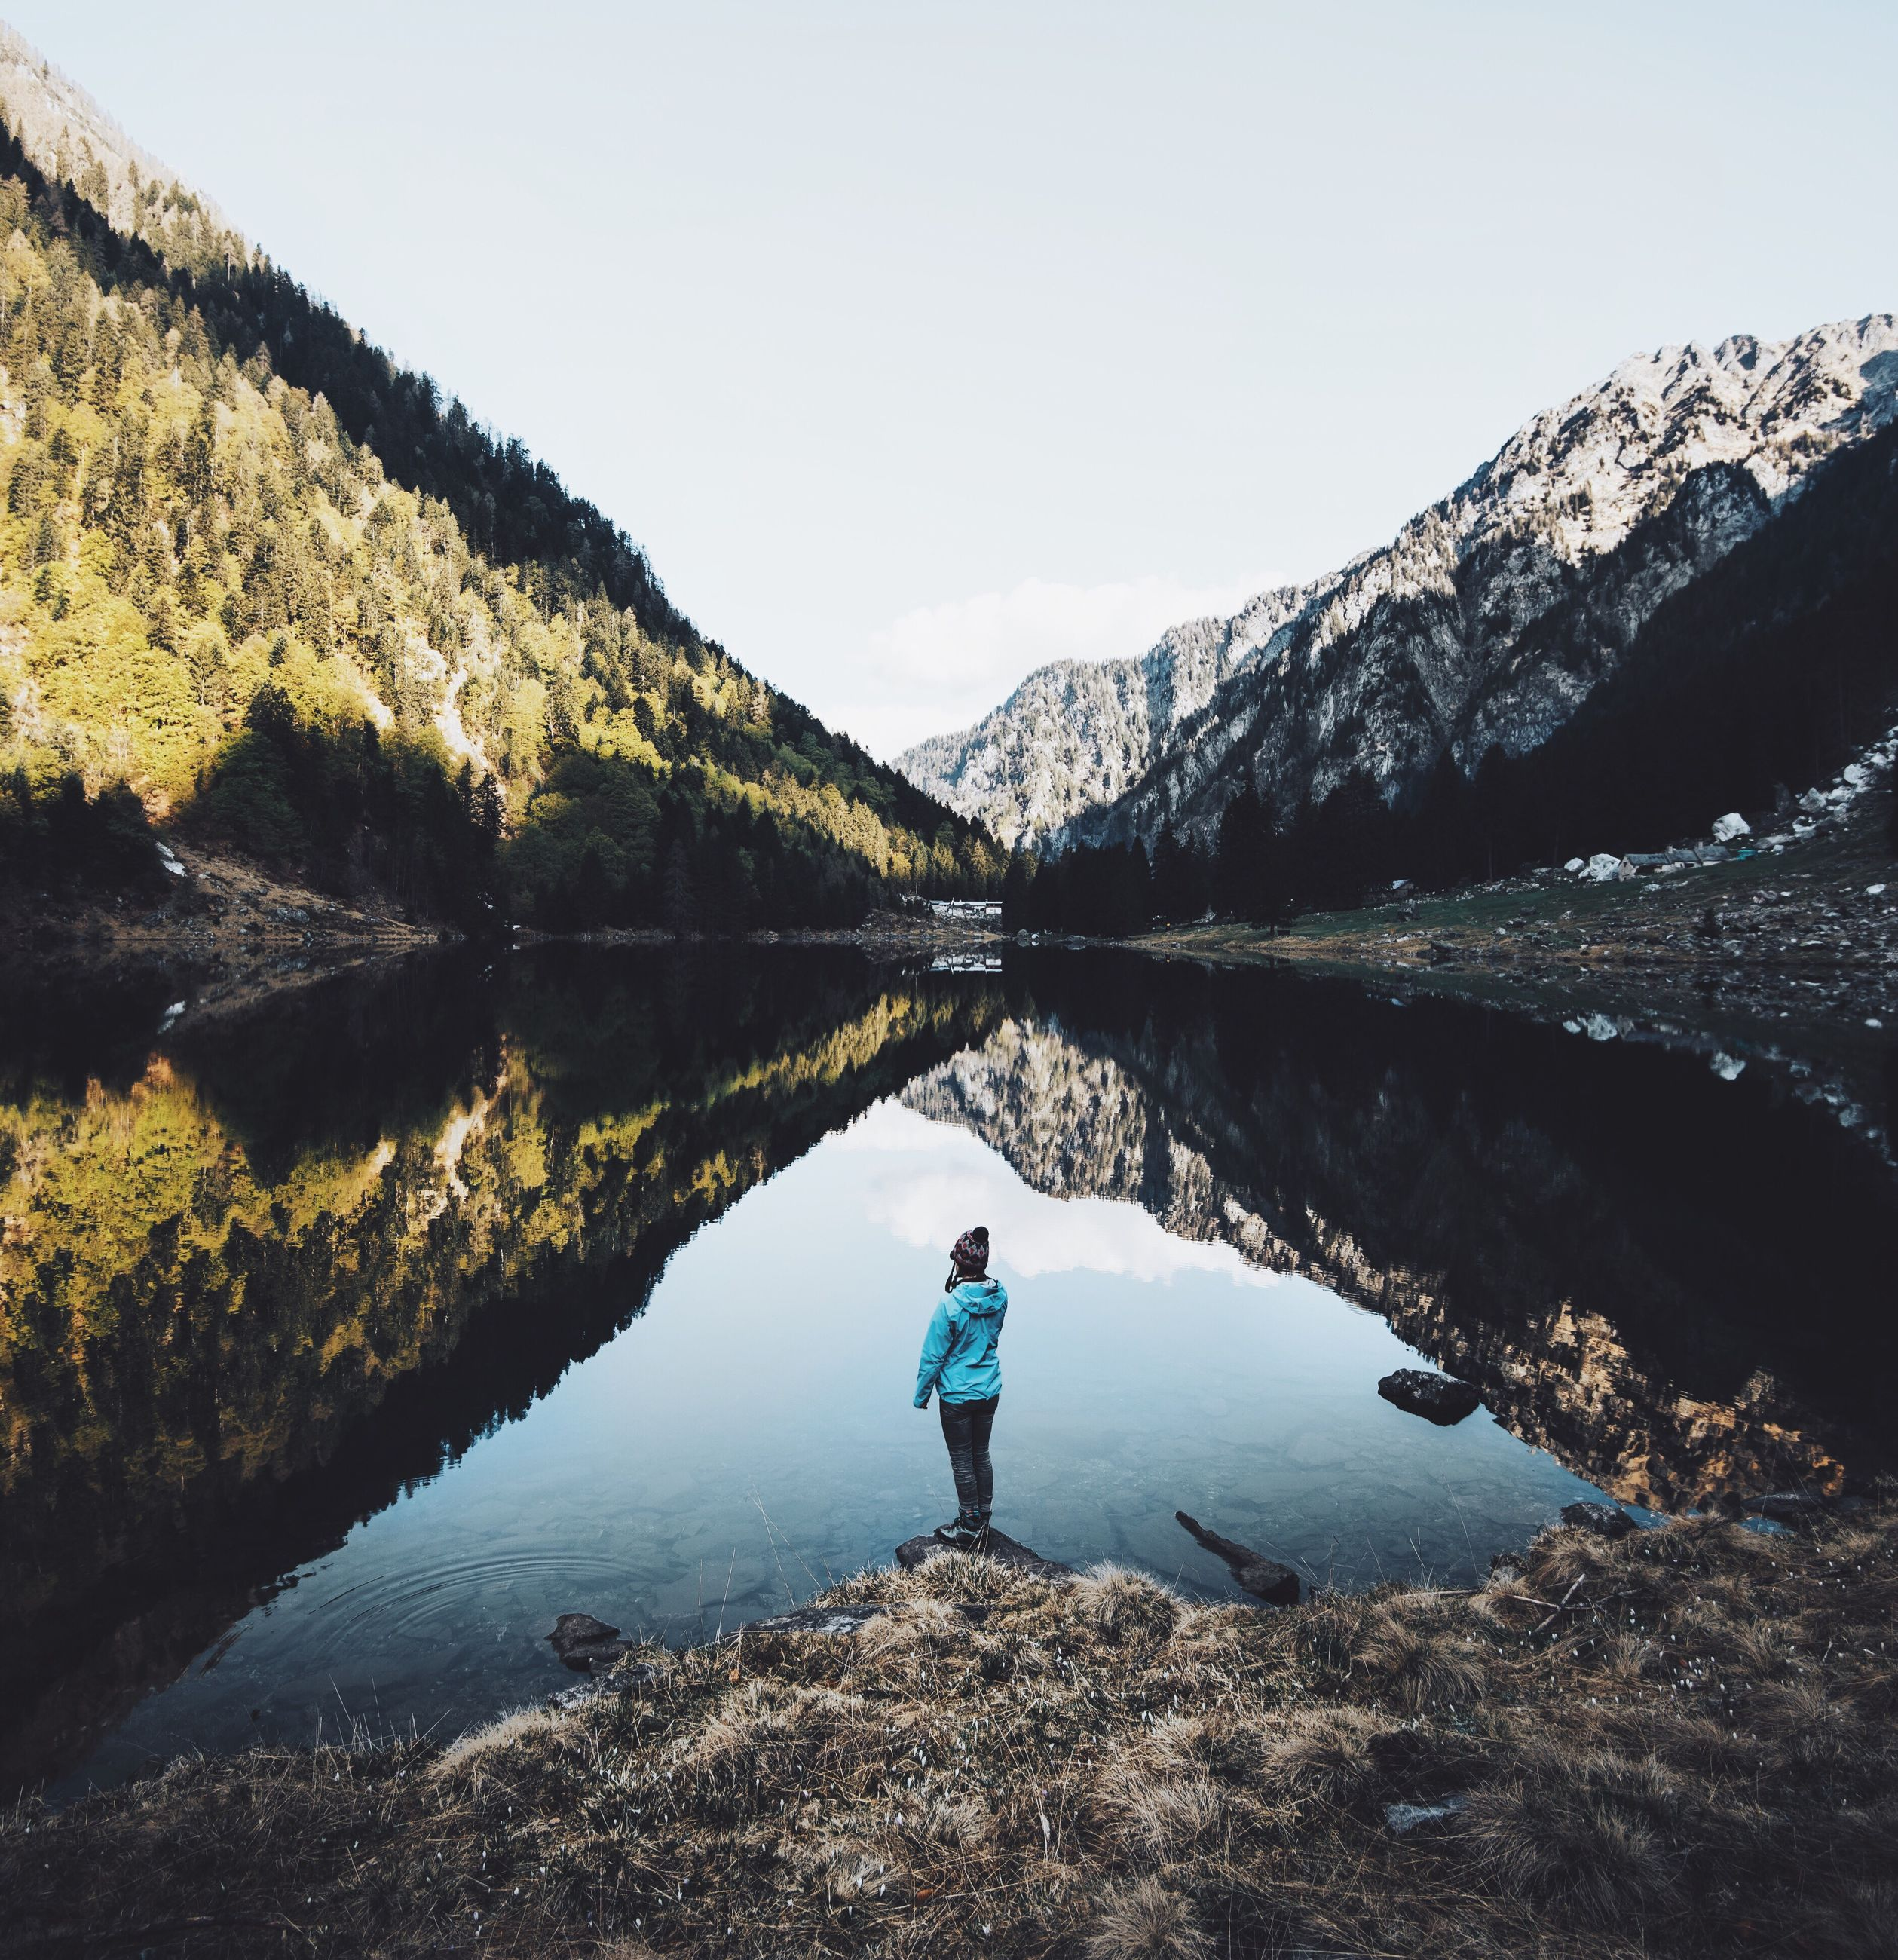 reflection, water, lake, real people, outdoors, nature, leisure activity, one person, beauty in nature, tranquility, standing, tranquil scene, day, scenics, growth, sky, full length, mountain, tree